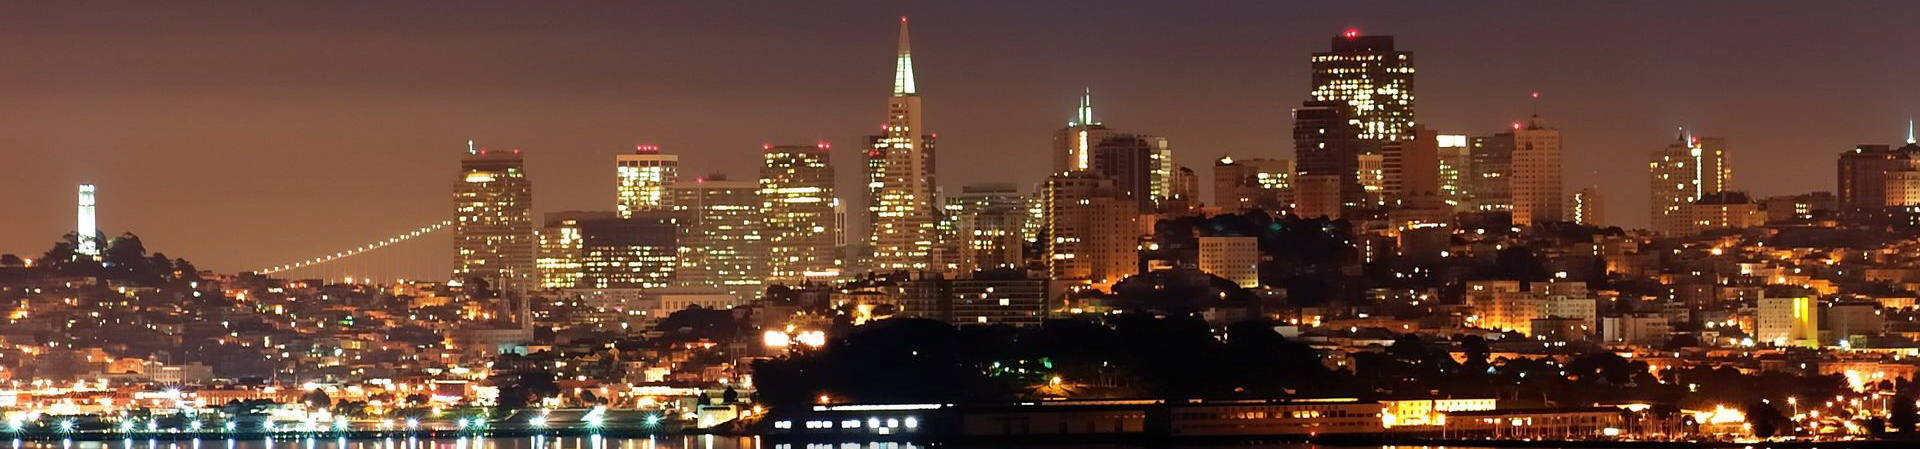 San_Francisco_Skyline_at_Night_1920x1080